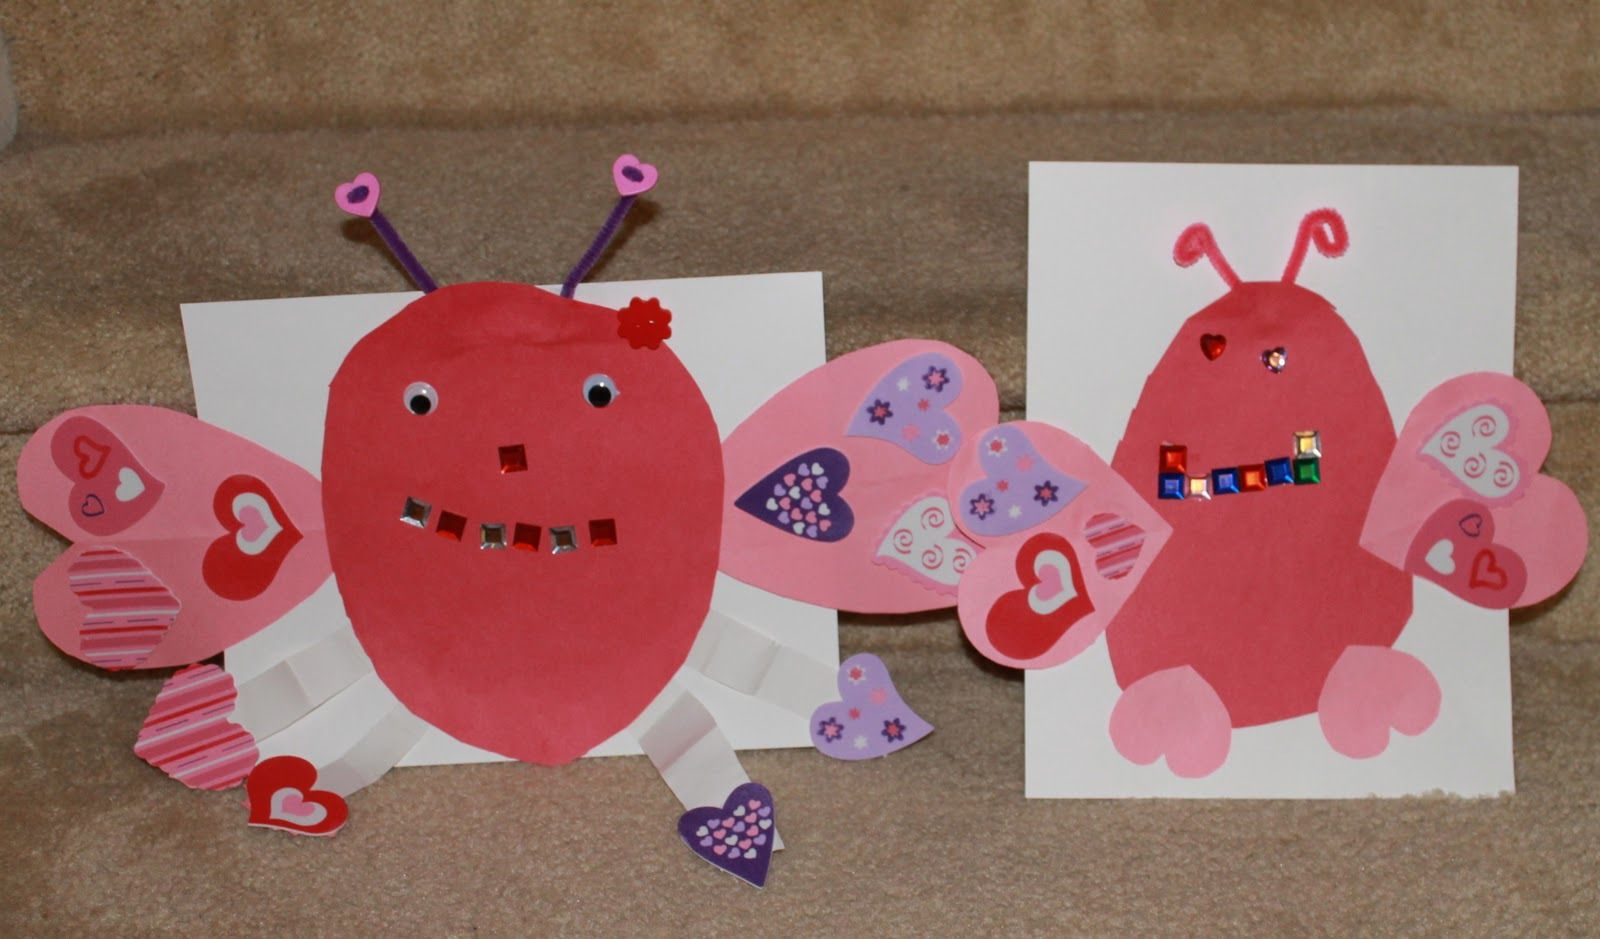 Preschool Valentine Day Crafts. Preschool Crafts For Kids Valentines Day Heart Love Creatures Craft